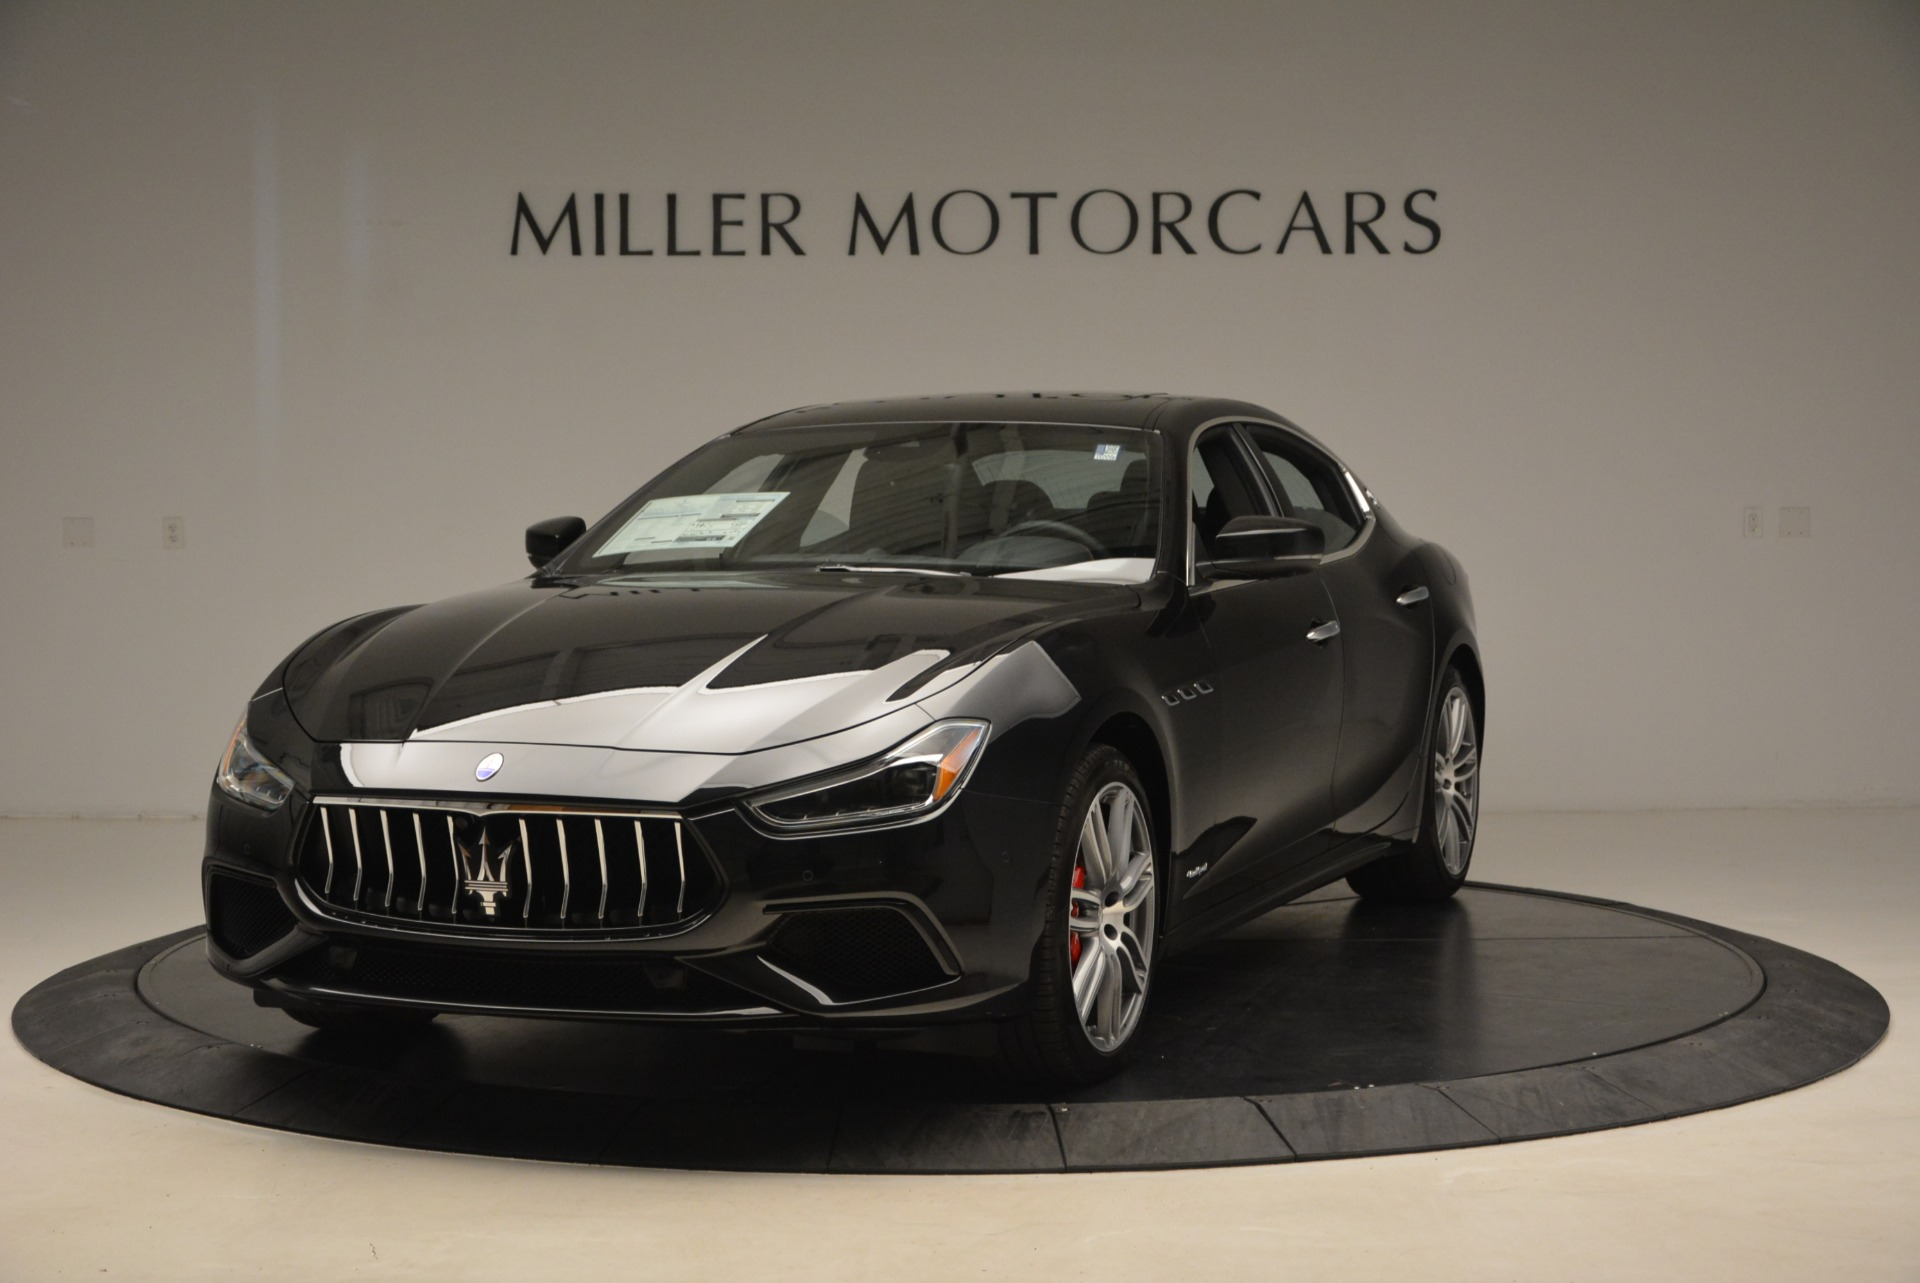 Used 2019 Maserati Ghibli S Q4 GranSport for sale $64,900 at Bentley Greenwich in Greenwich CT 06830 1